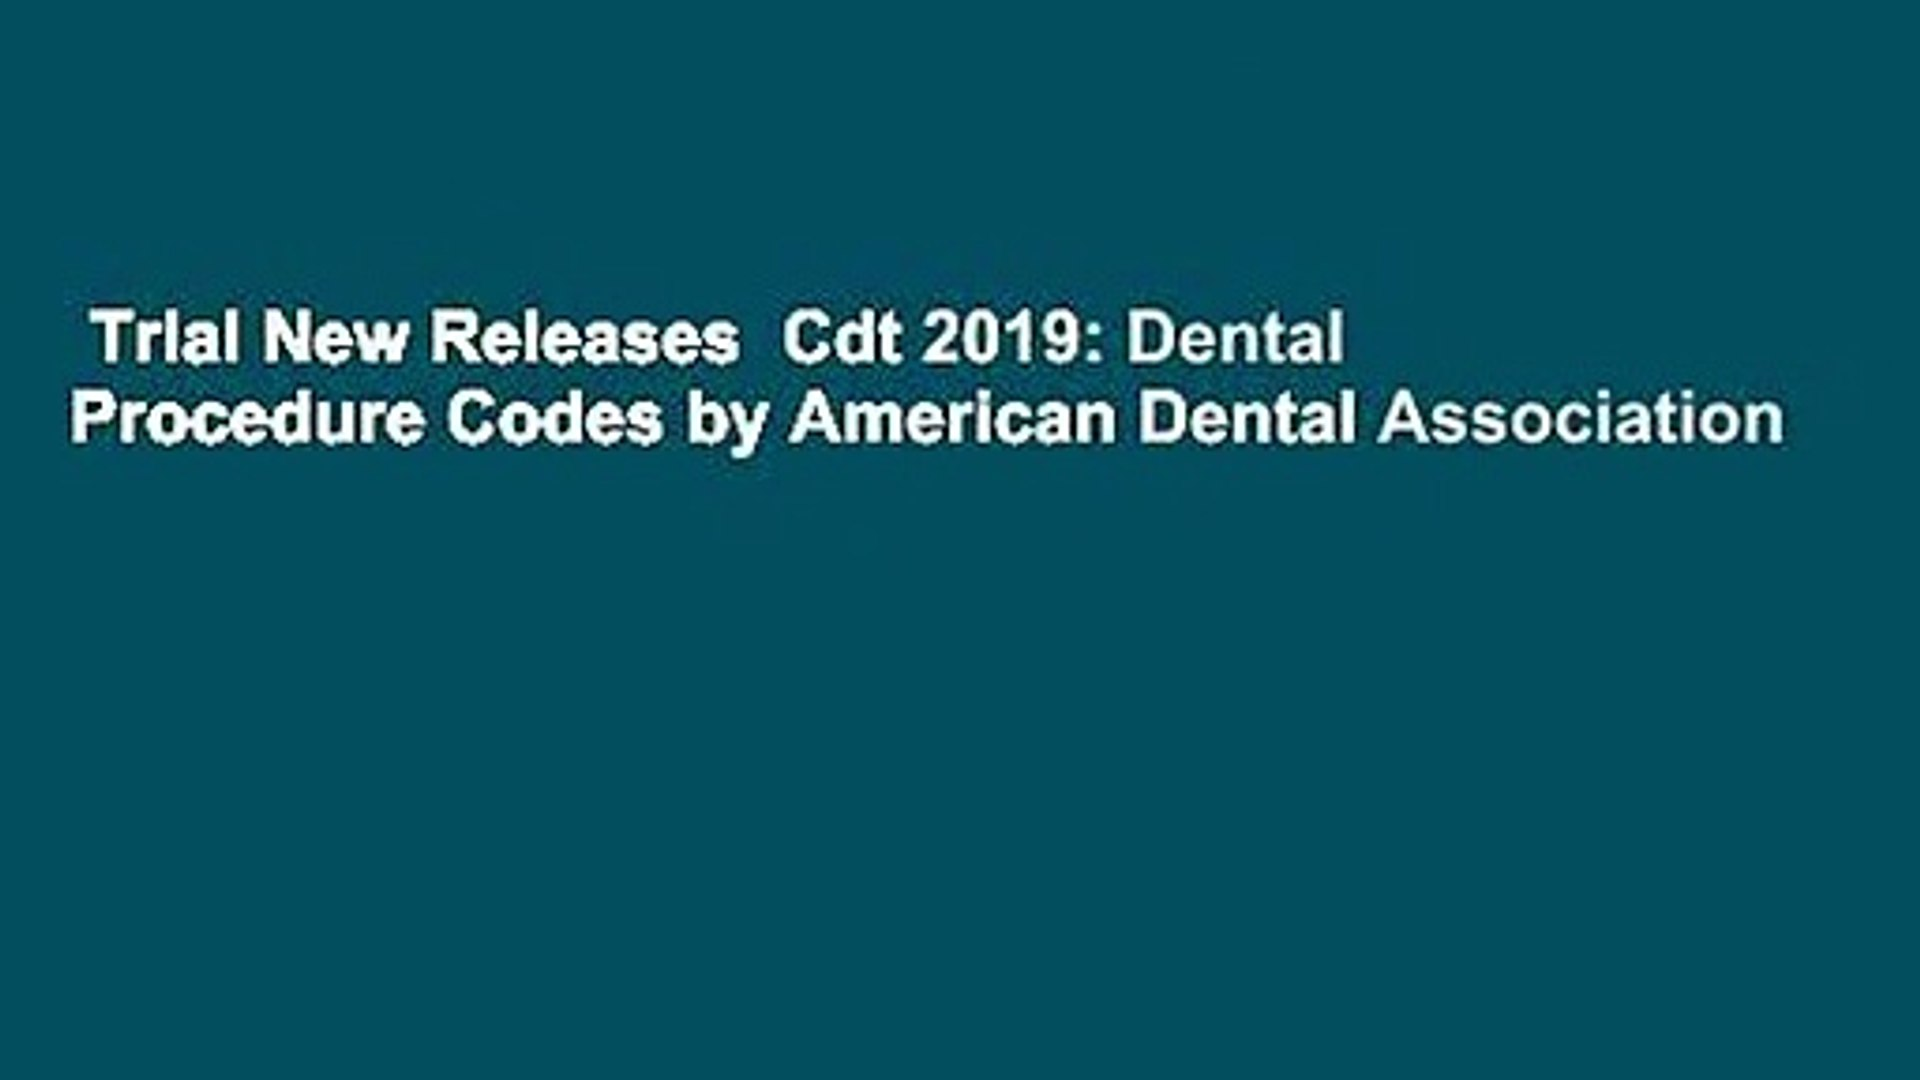 Trial New Releases Cdt 2019: Dental Procedure Codes by American Dental  Association